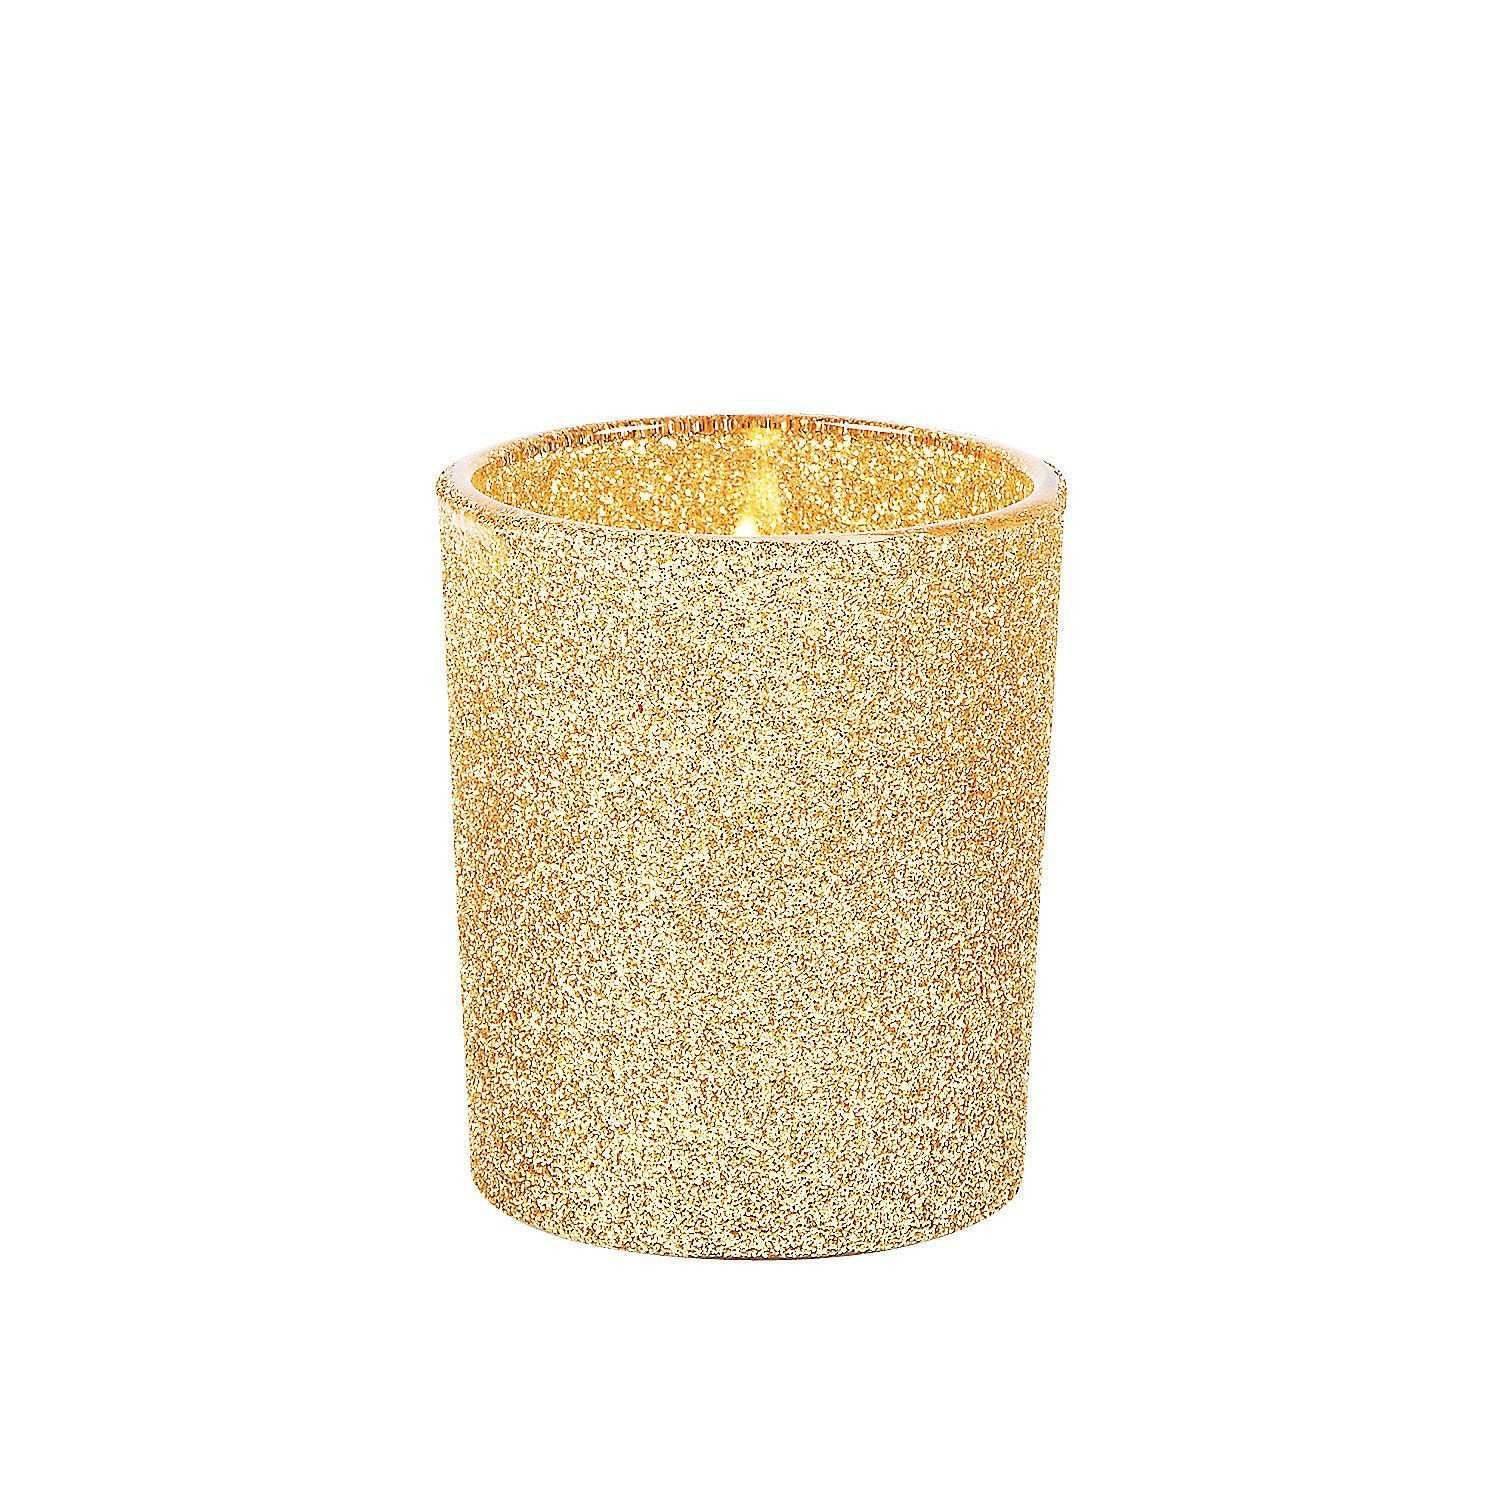 Gold Hurricane Vase Of Gold Mercury Glass Vases Awesome Inspiration Gold Votive Candles Intended for Gold Mercury Glass Vases Awesome Inspiration Gold Votive Candles with Gold Glitter Votive Holders